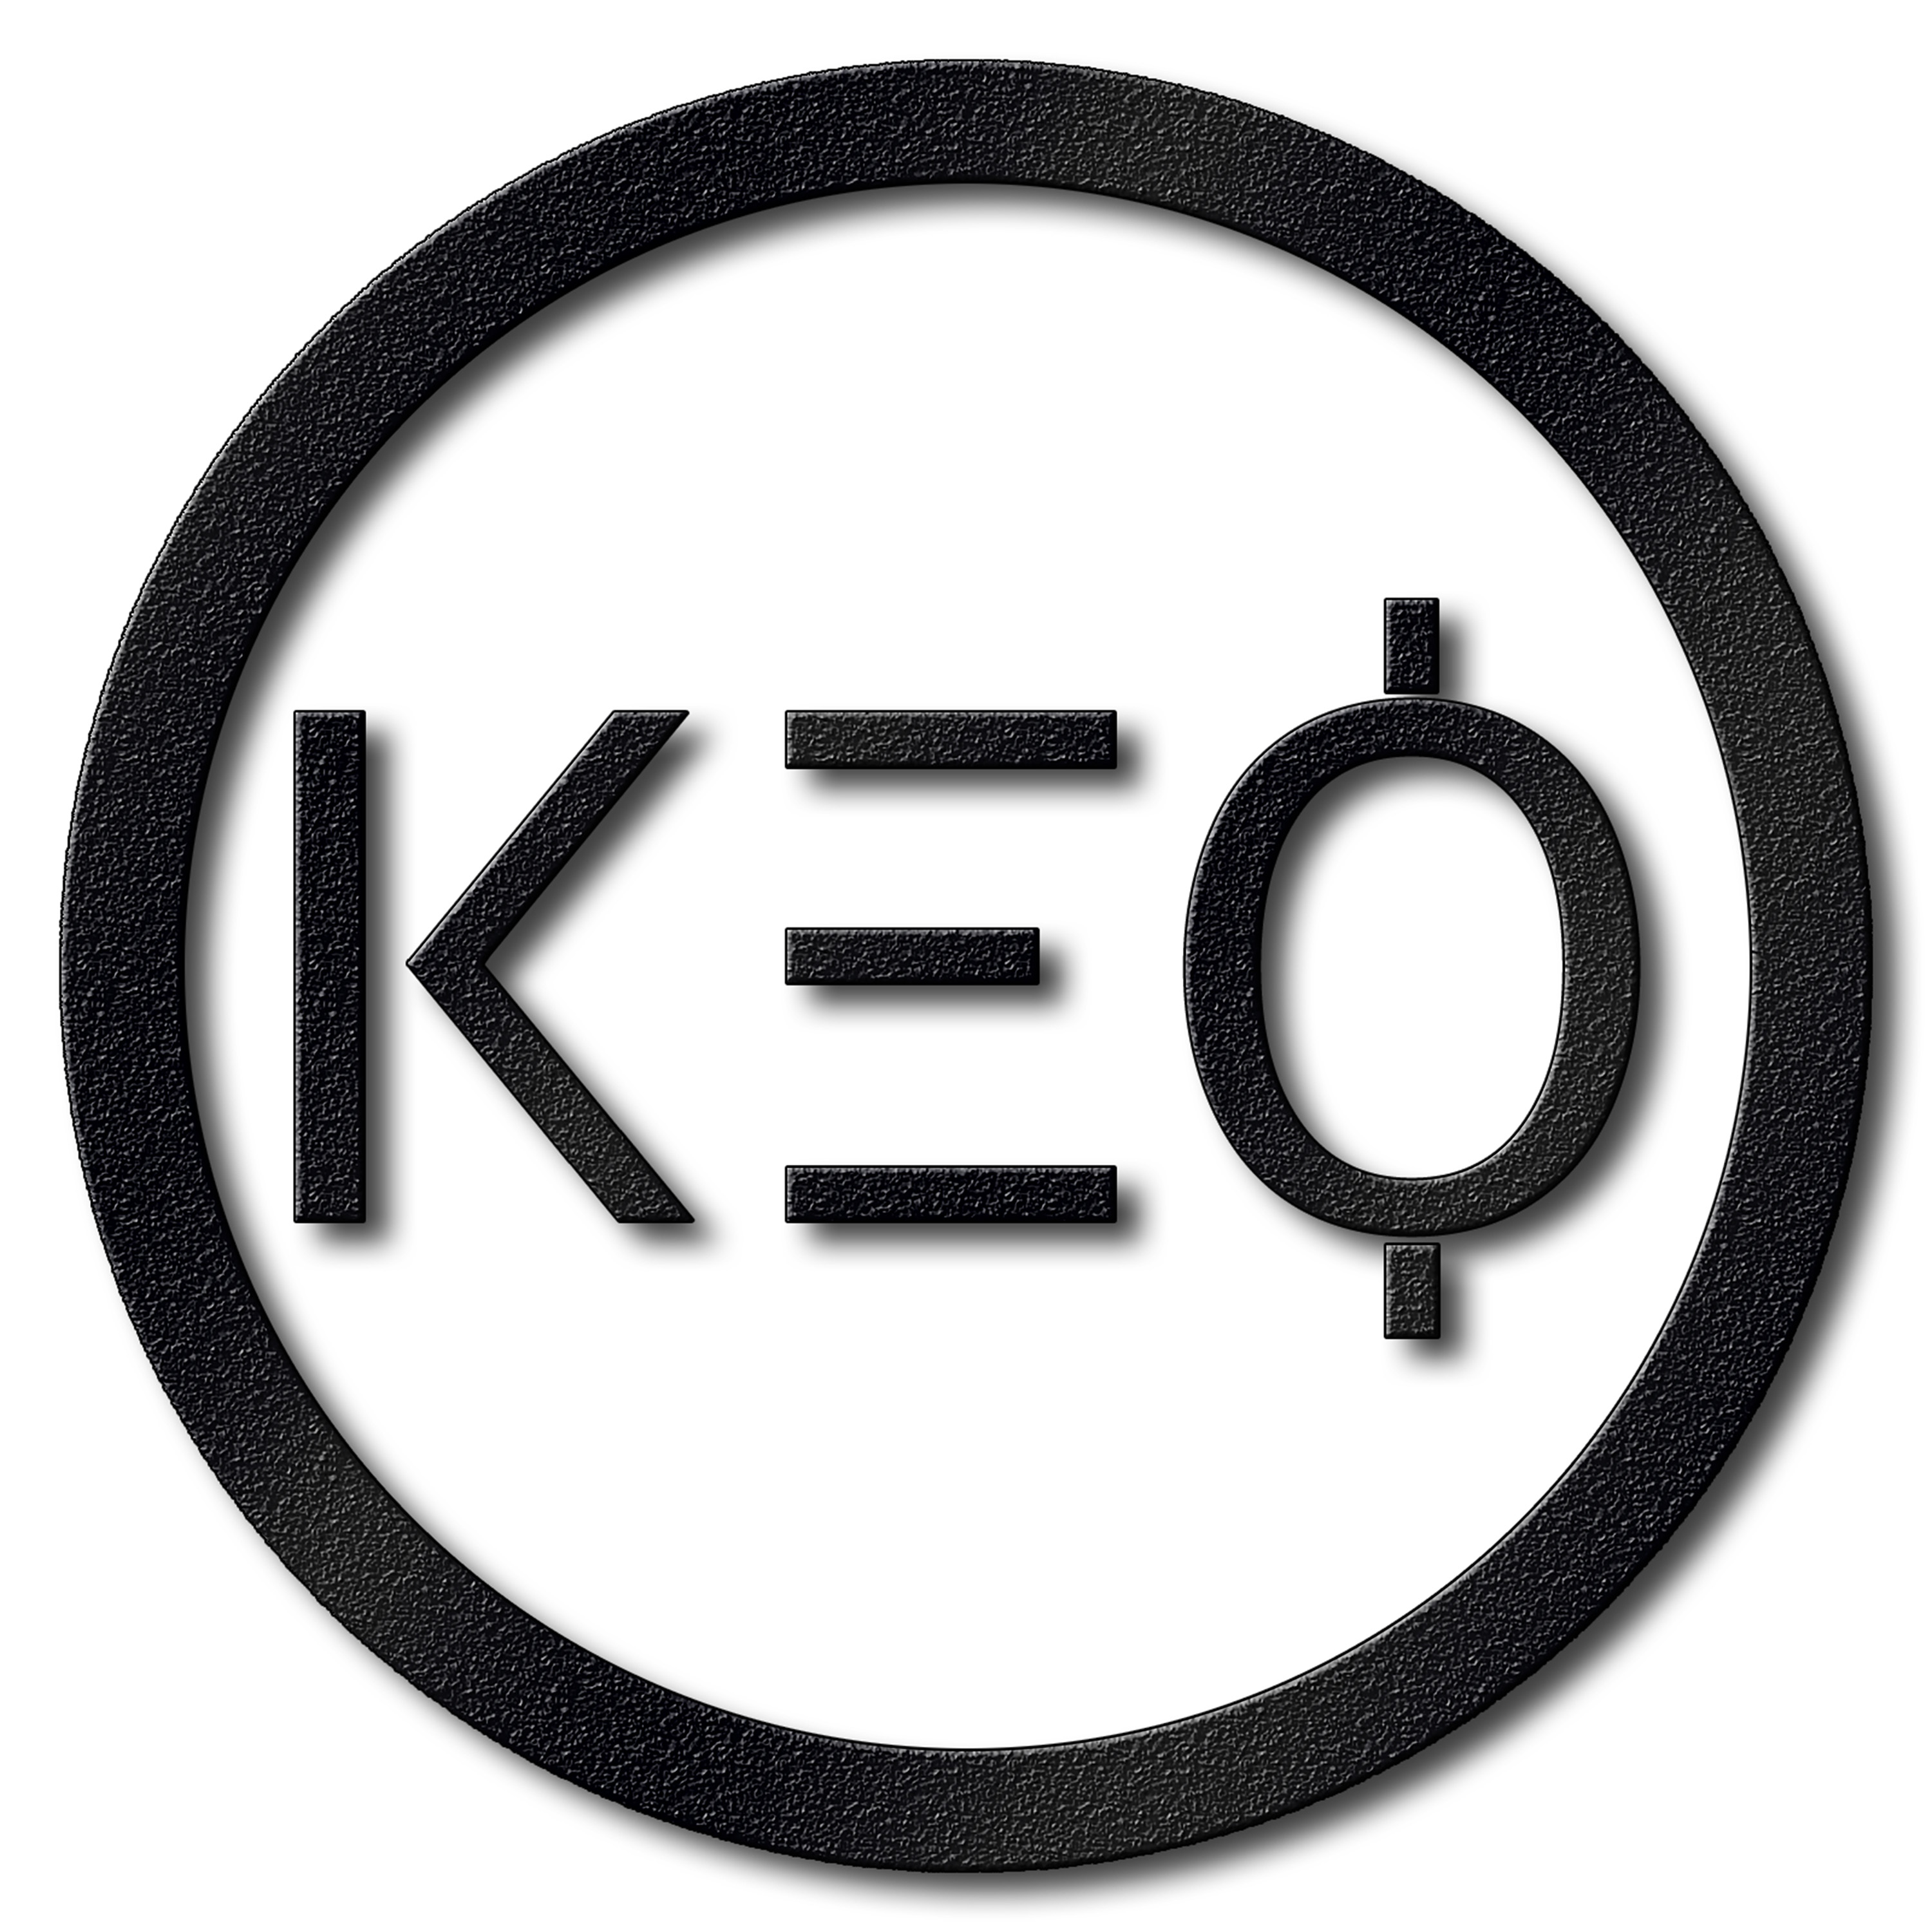 KEO's channel